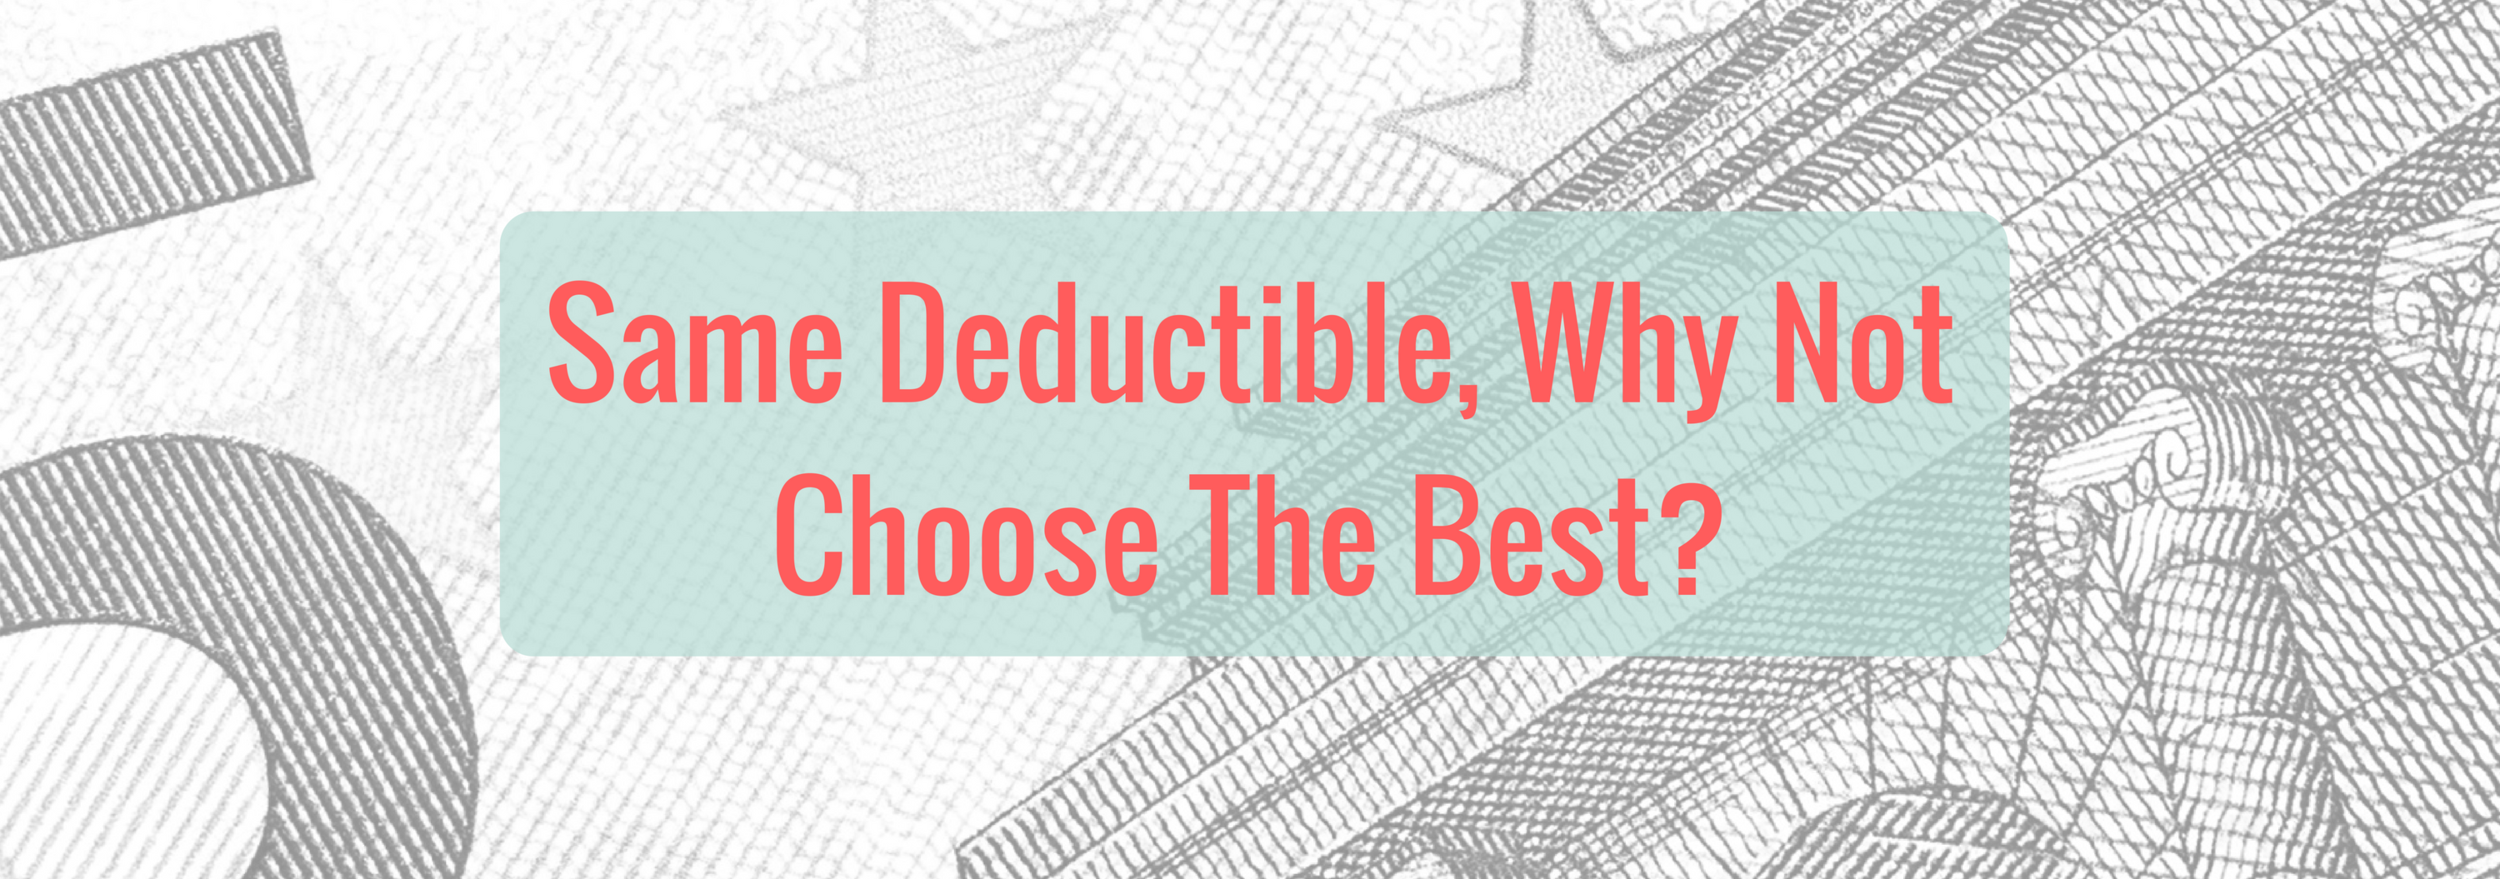 If your insurance covers anything why not go with the best...it's the same deductible